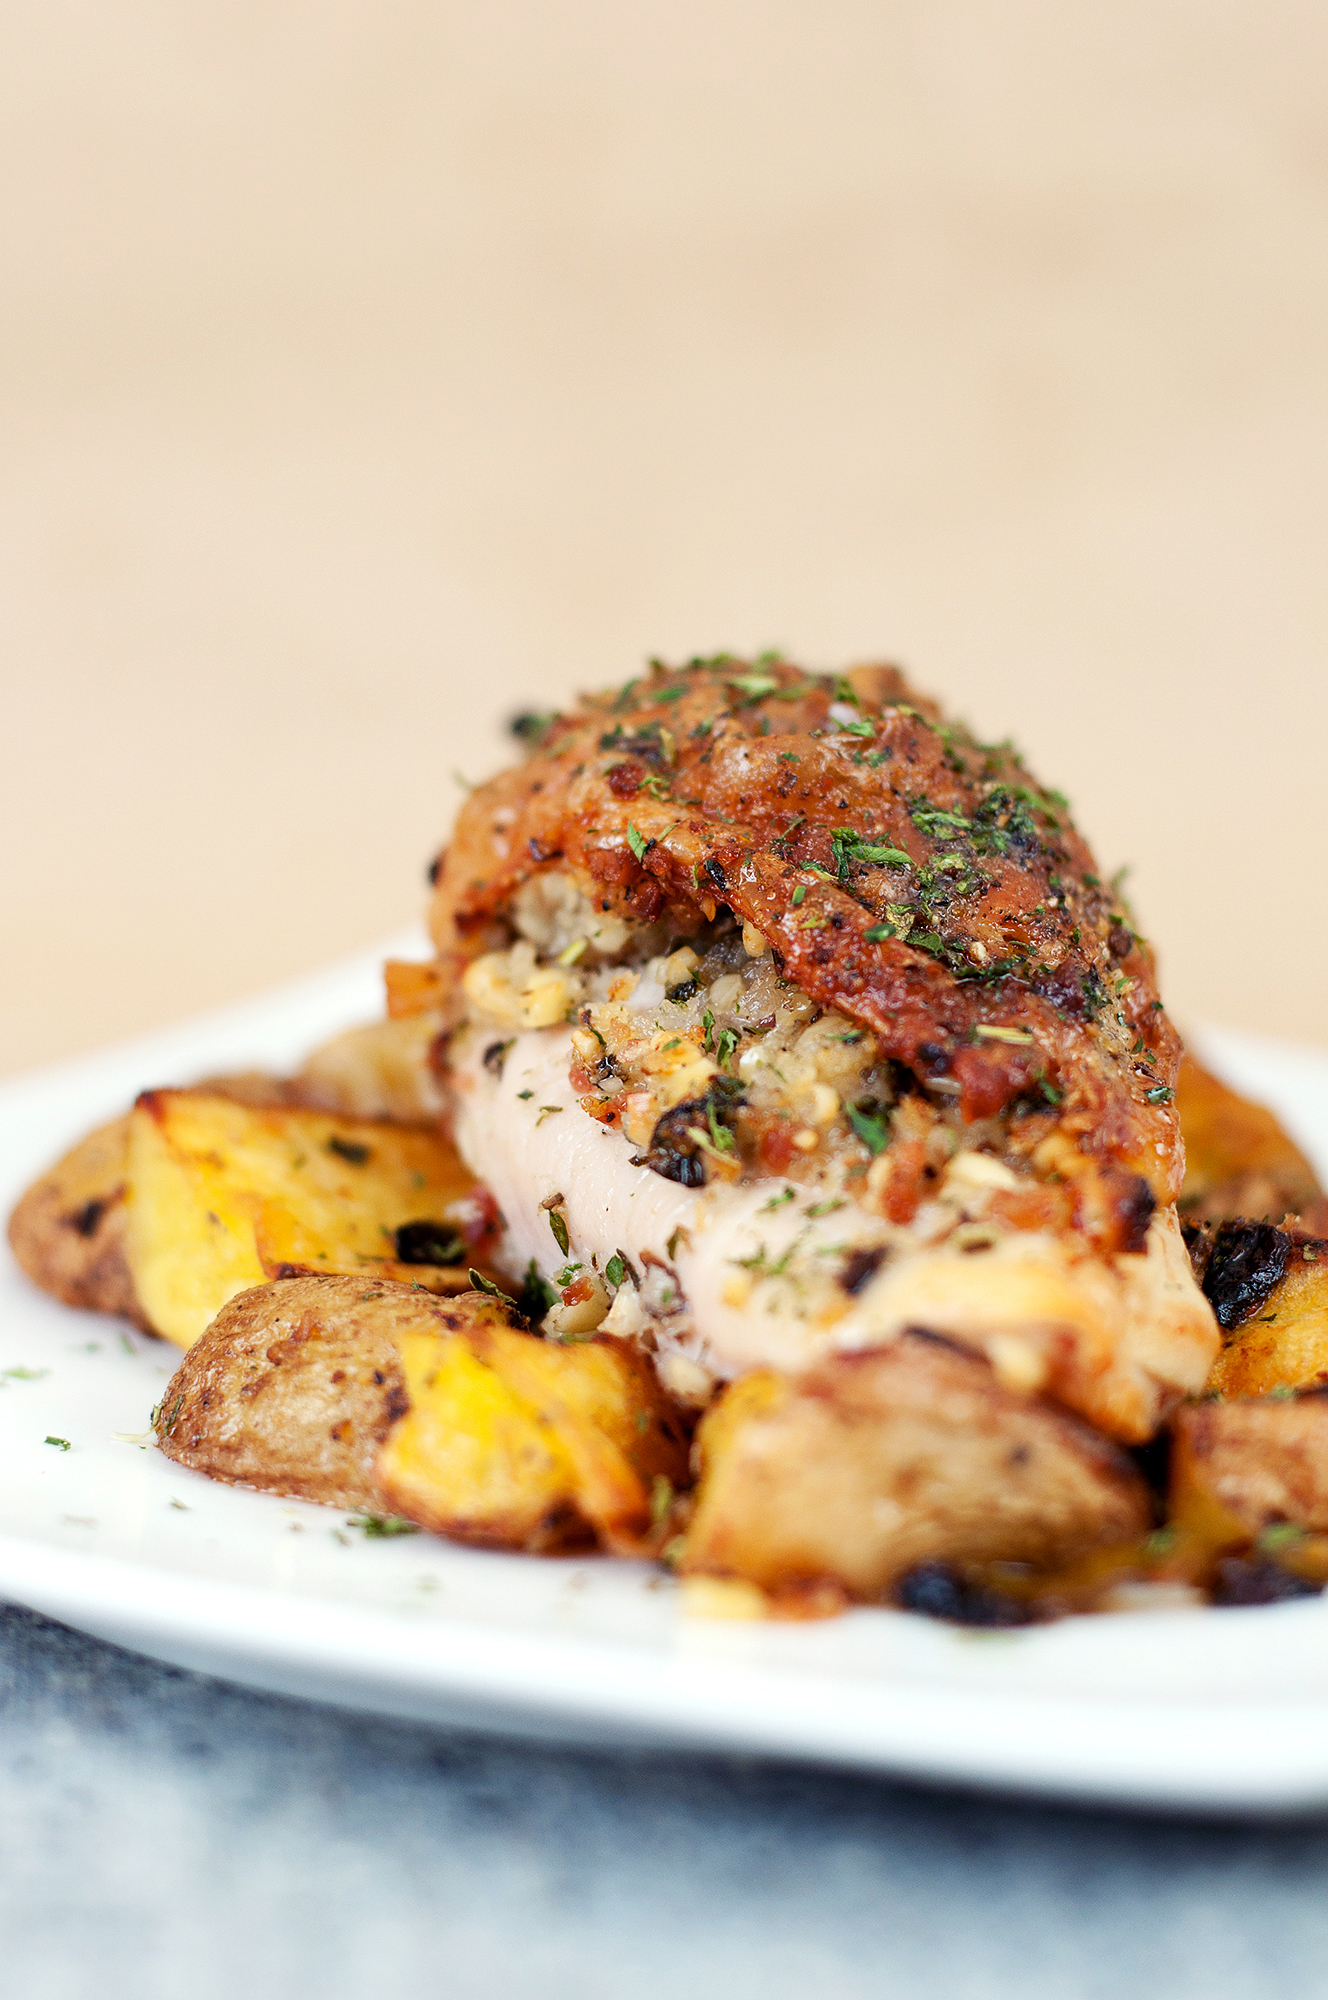 Stuffed boneless chicken breast with skin recipes